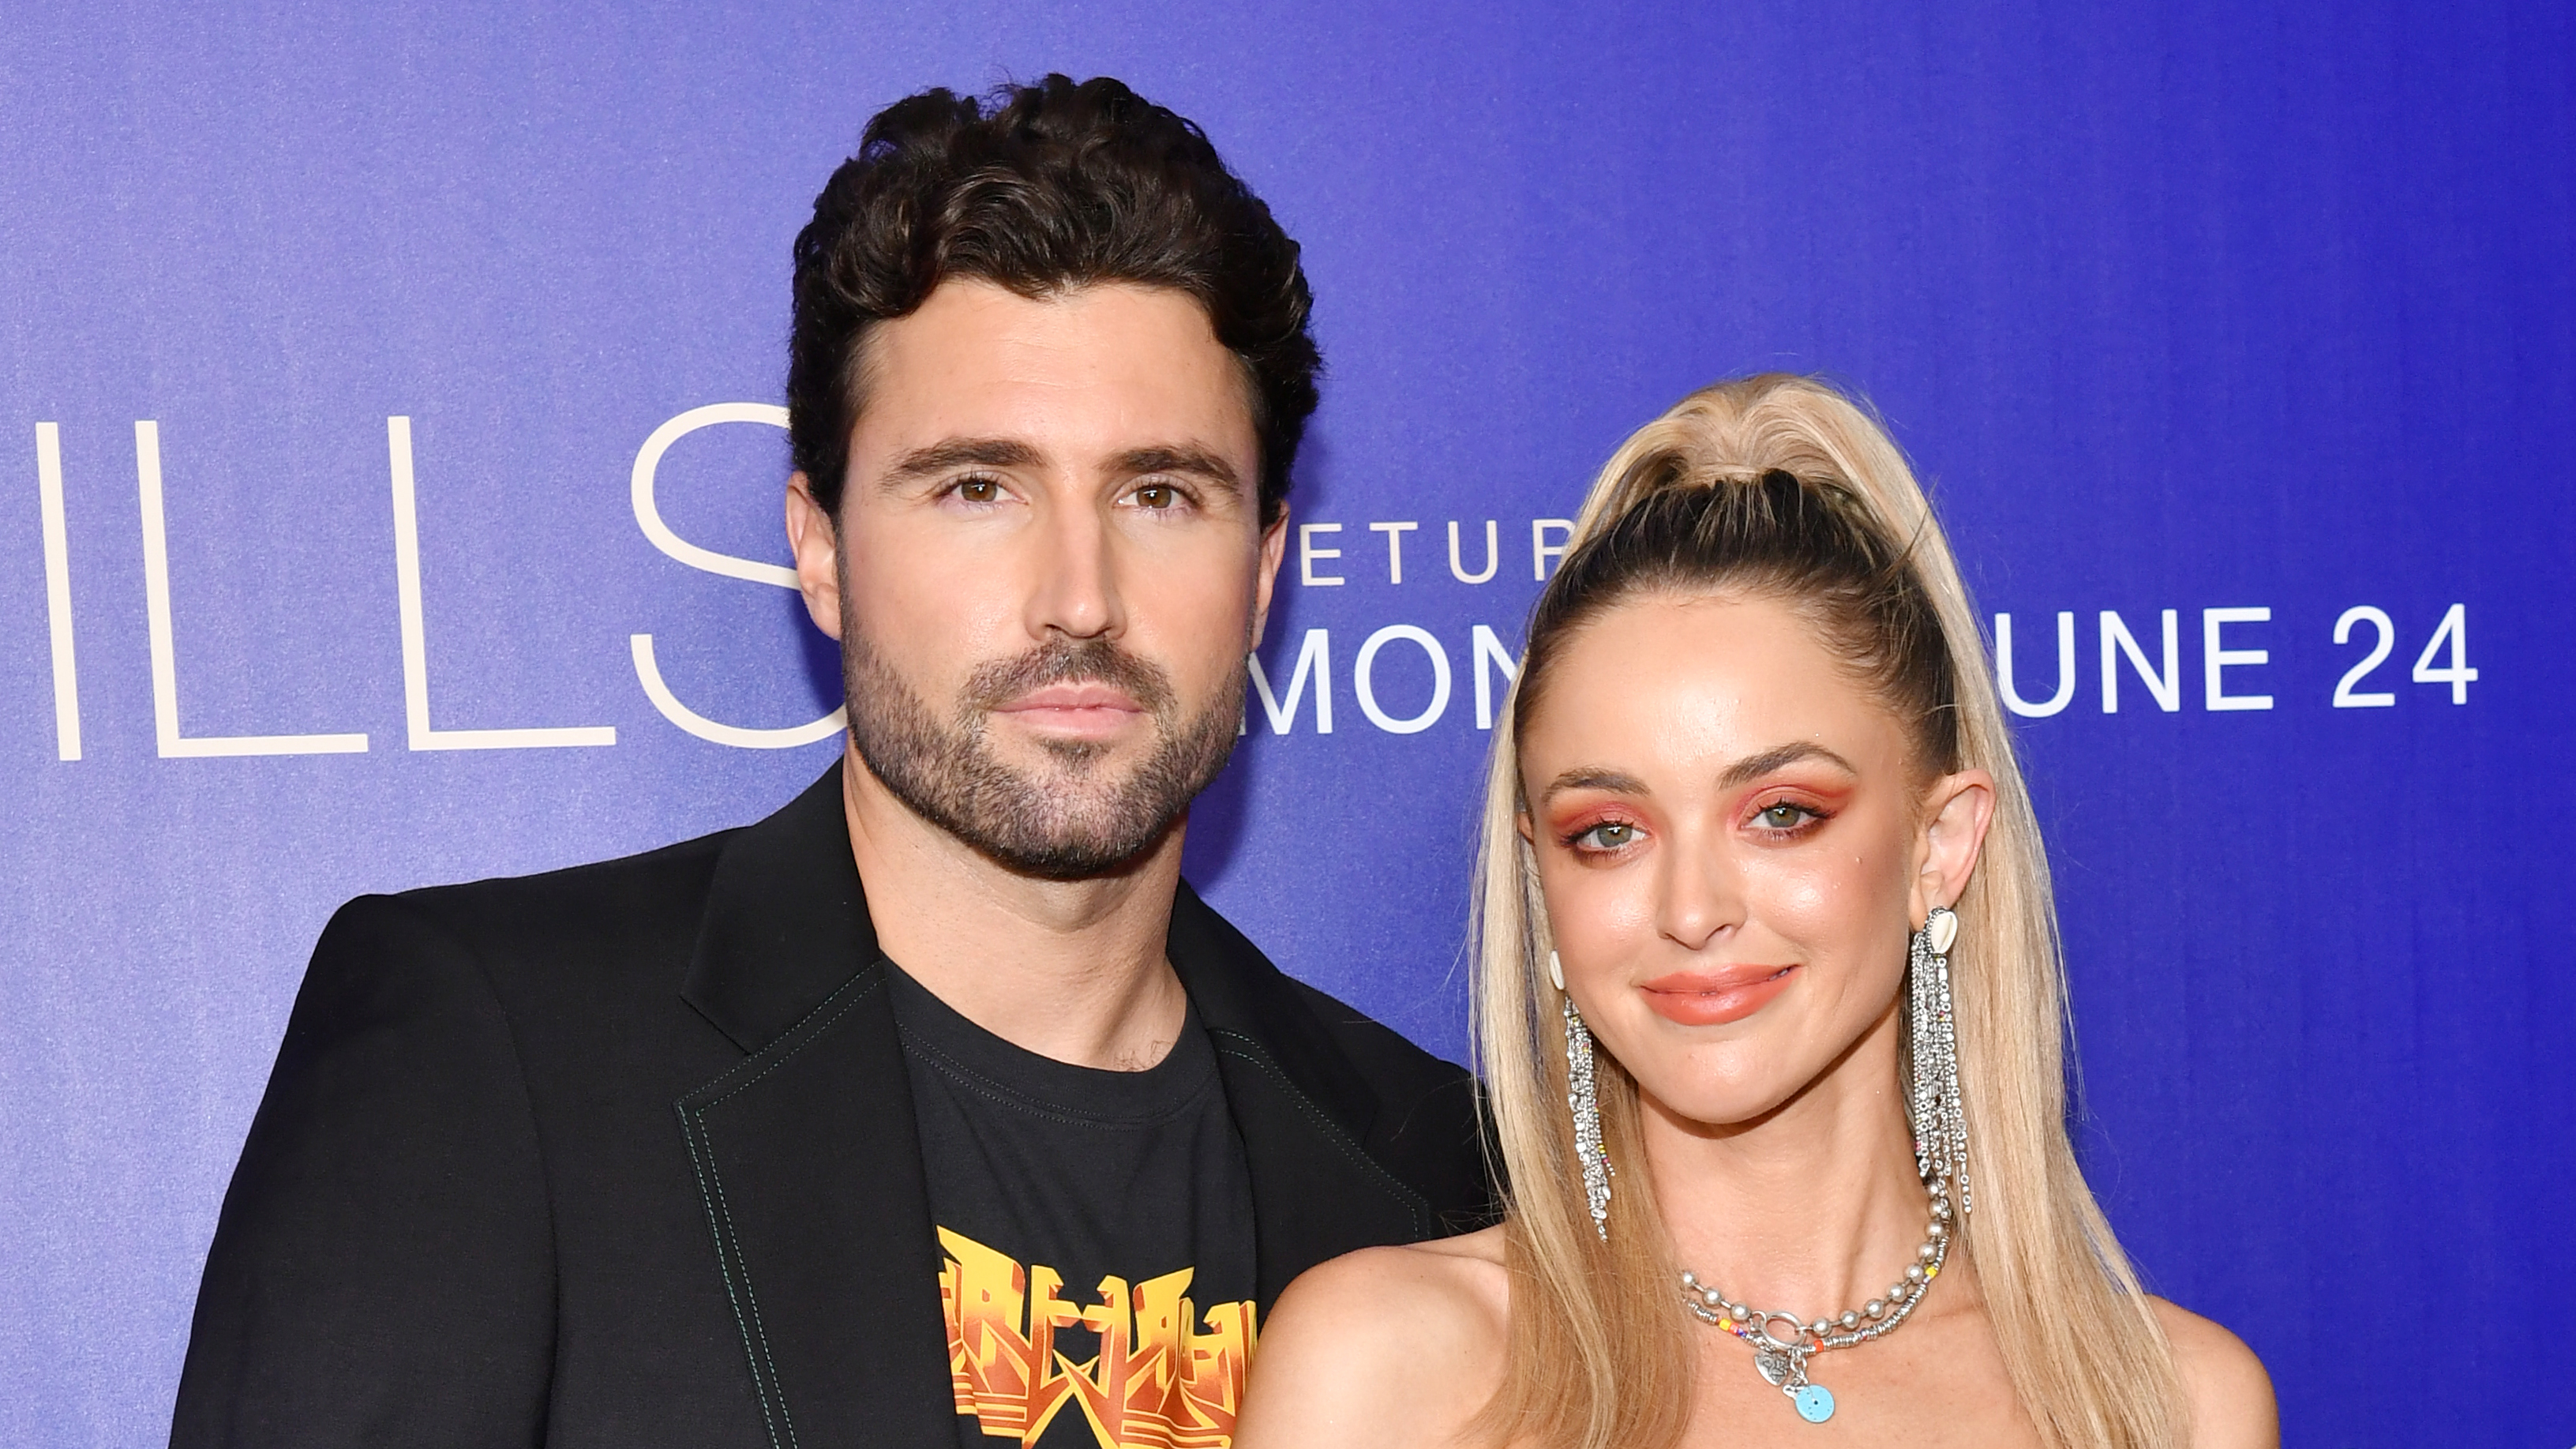 Westlake Legal Group brody Brody Jenner and Kaitlynn Carter split, marriage was never legal New York Post fox-news/entertainment/events/divorce fox-news/entertainment/events/couples fox-news/entertainment/celebrity-news fnc/entertainment fnc Chelsea Hirsch article 8c36fdeb-e43d-58b0-a59f-5b499203b172